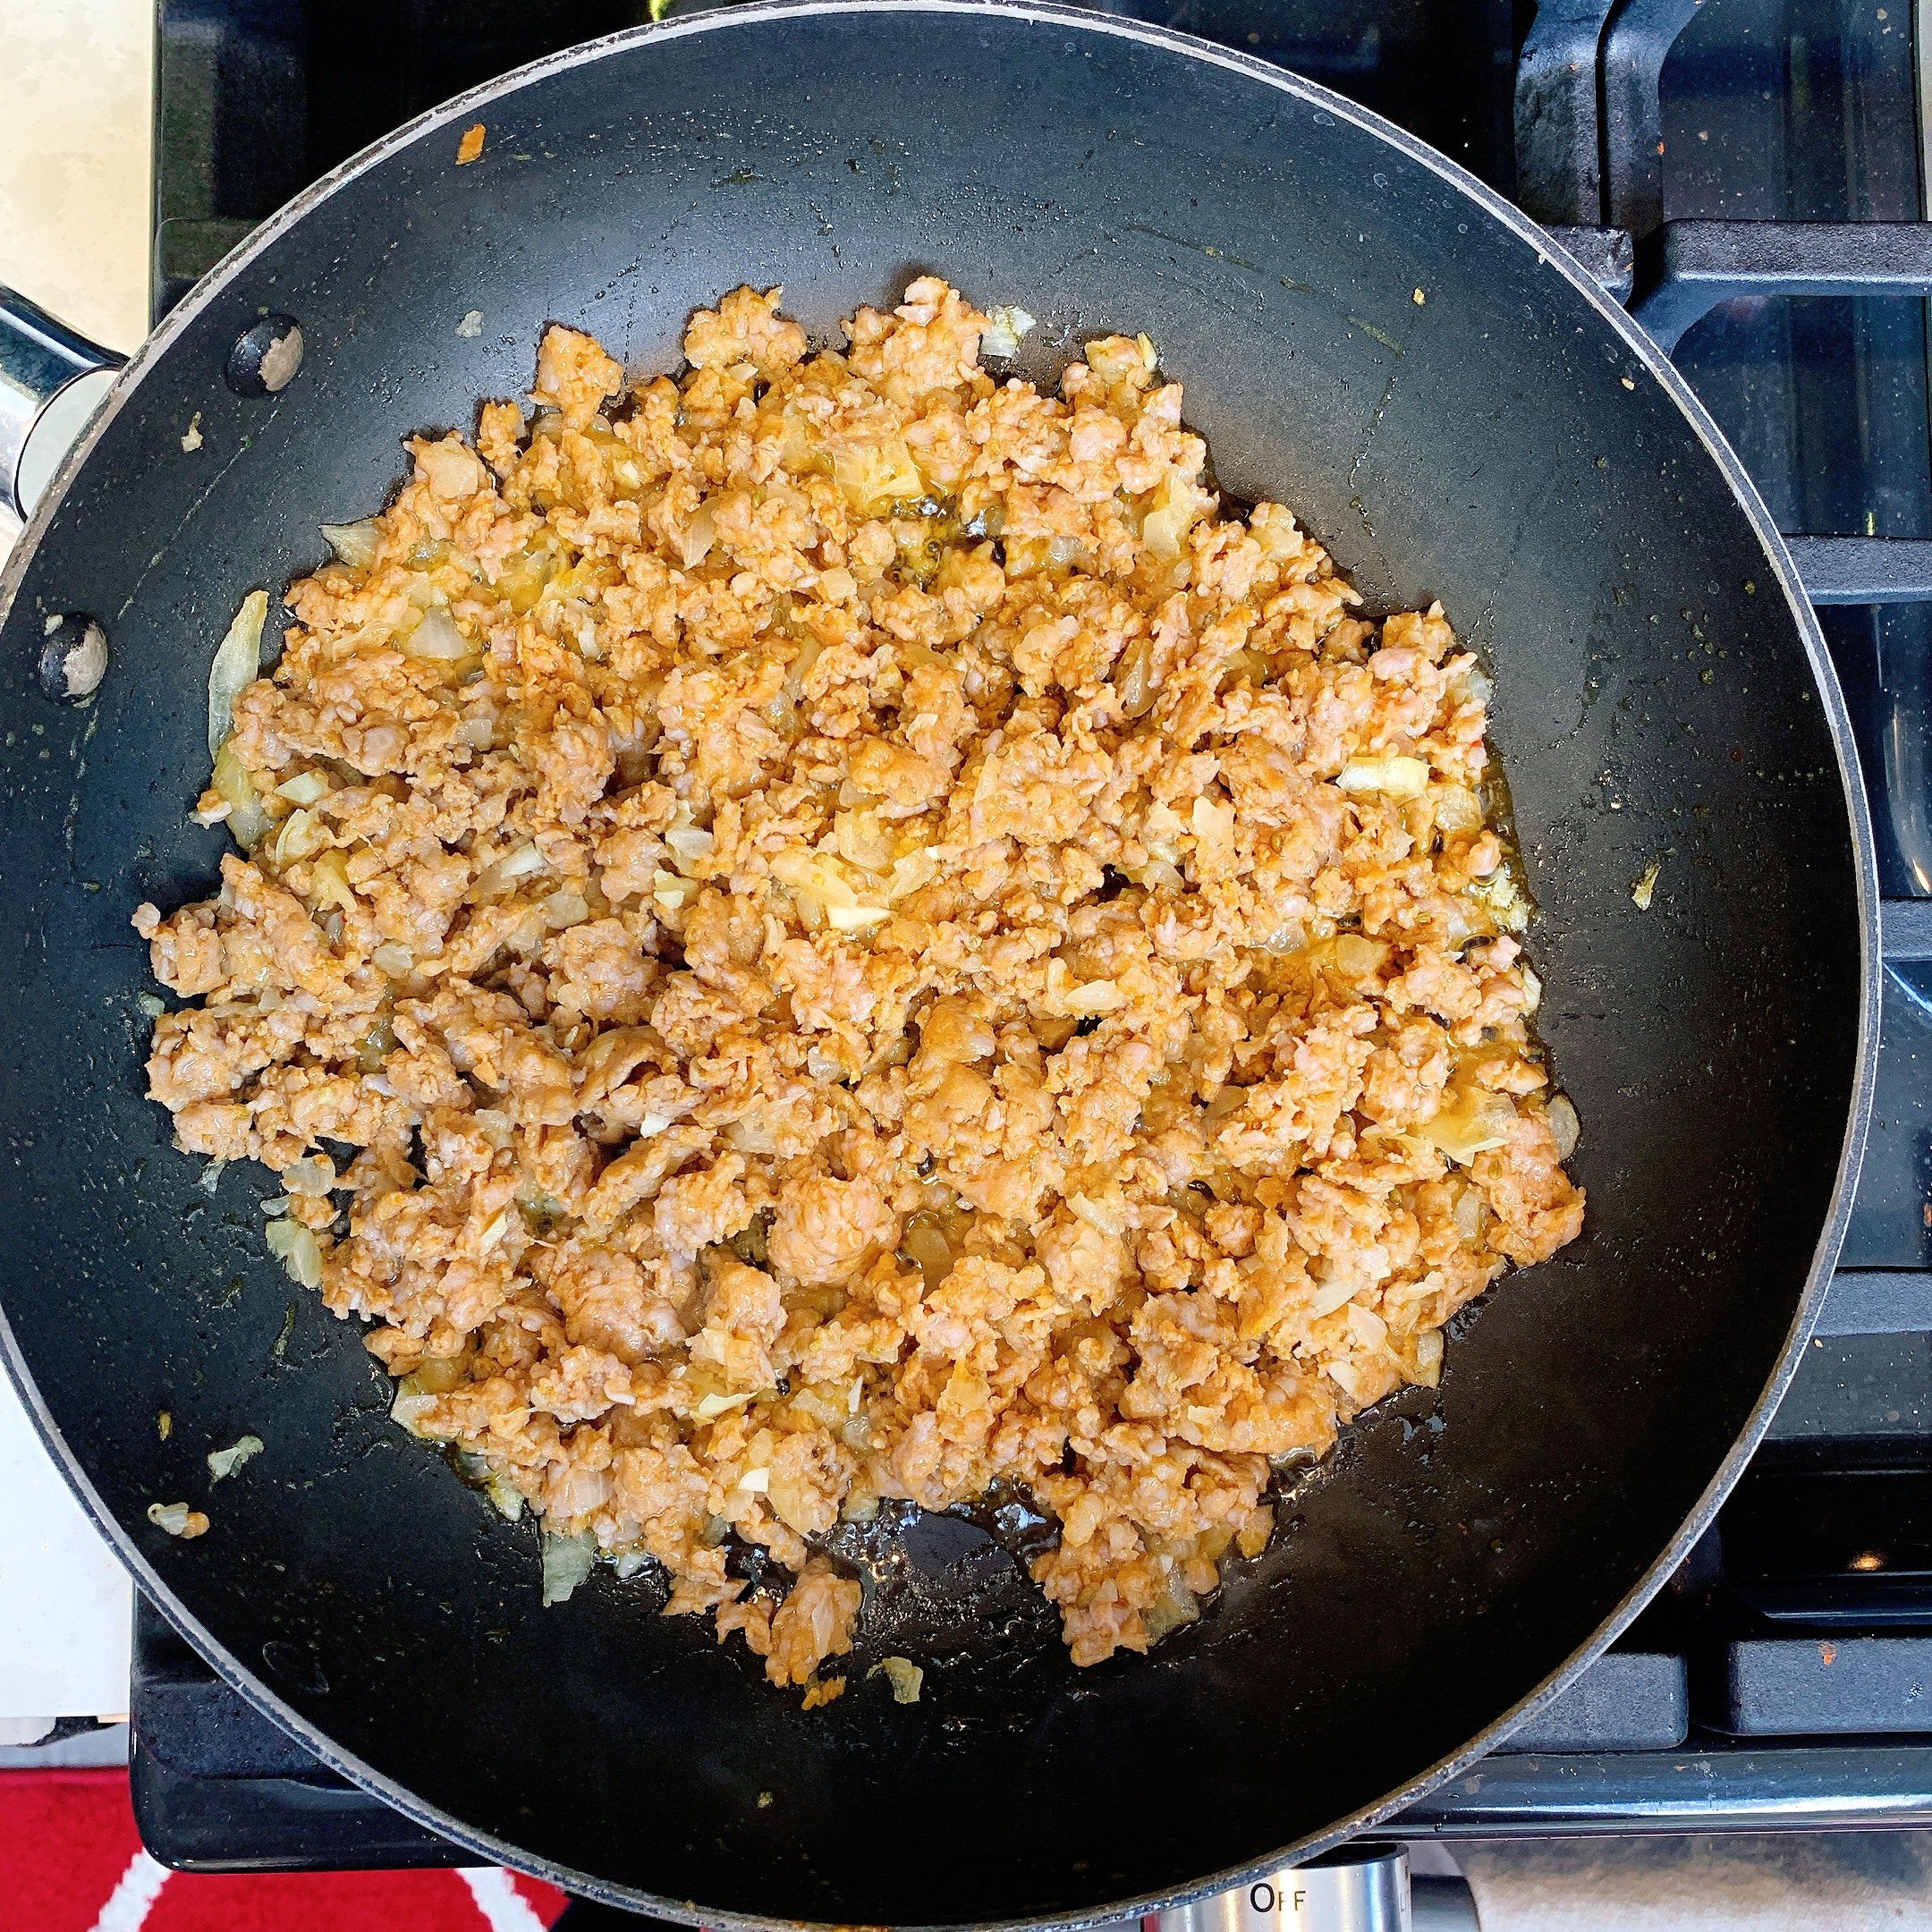 Italian sausage crumbles browning in a frying pan